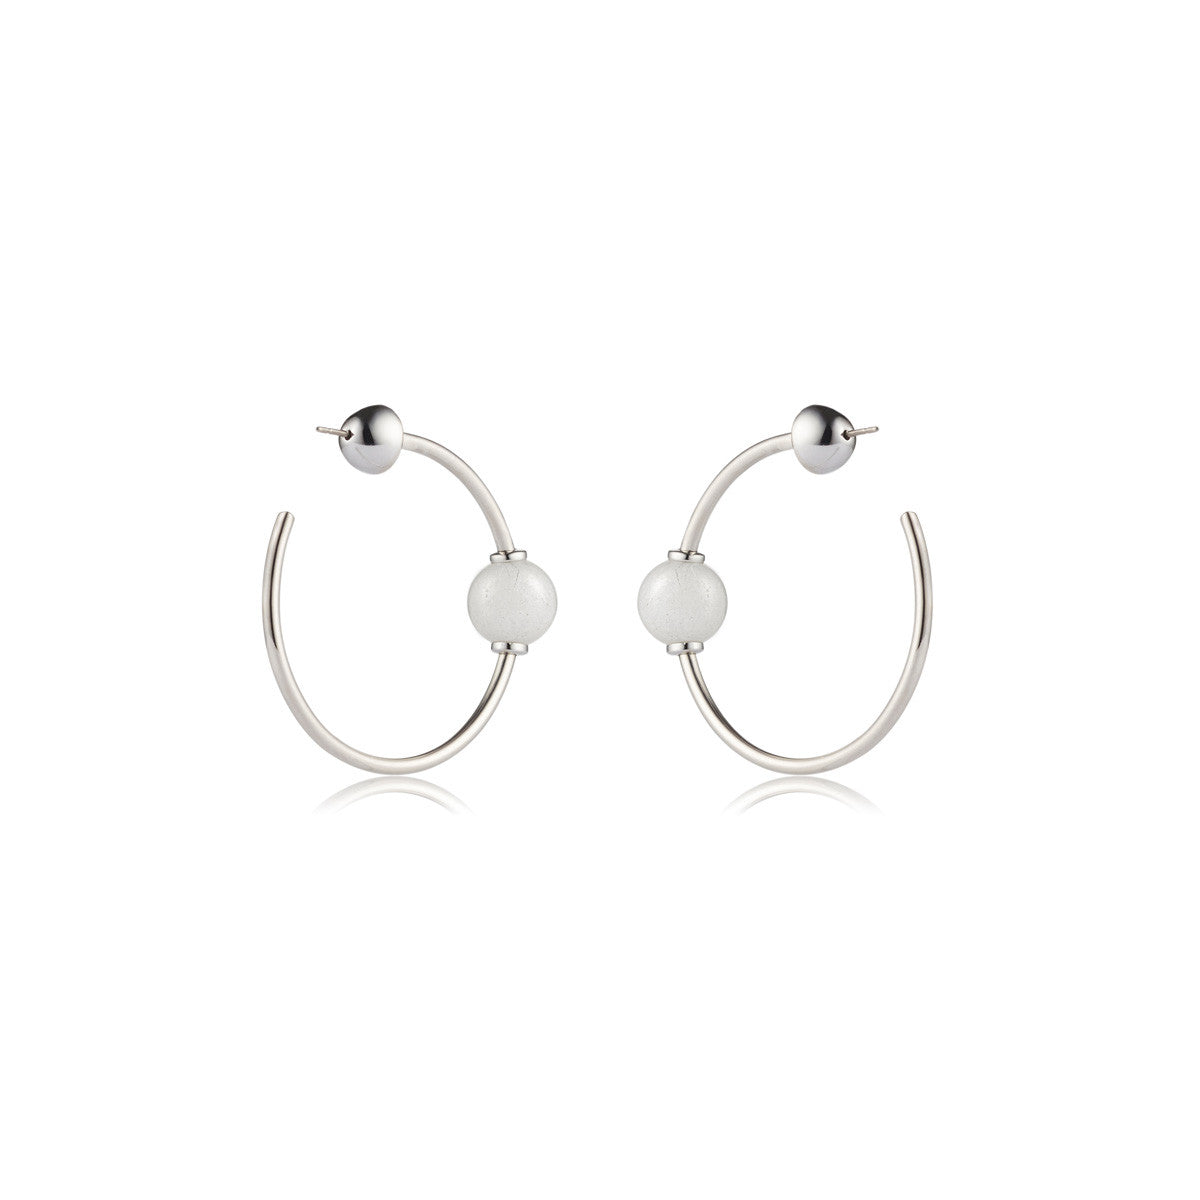 Solid brass, rhodium plated Mars Circulus hoop earrings set with hand cut natural white agate spheres – back